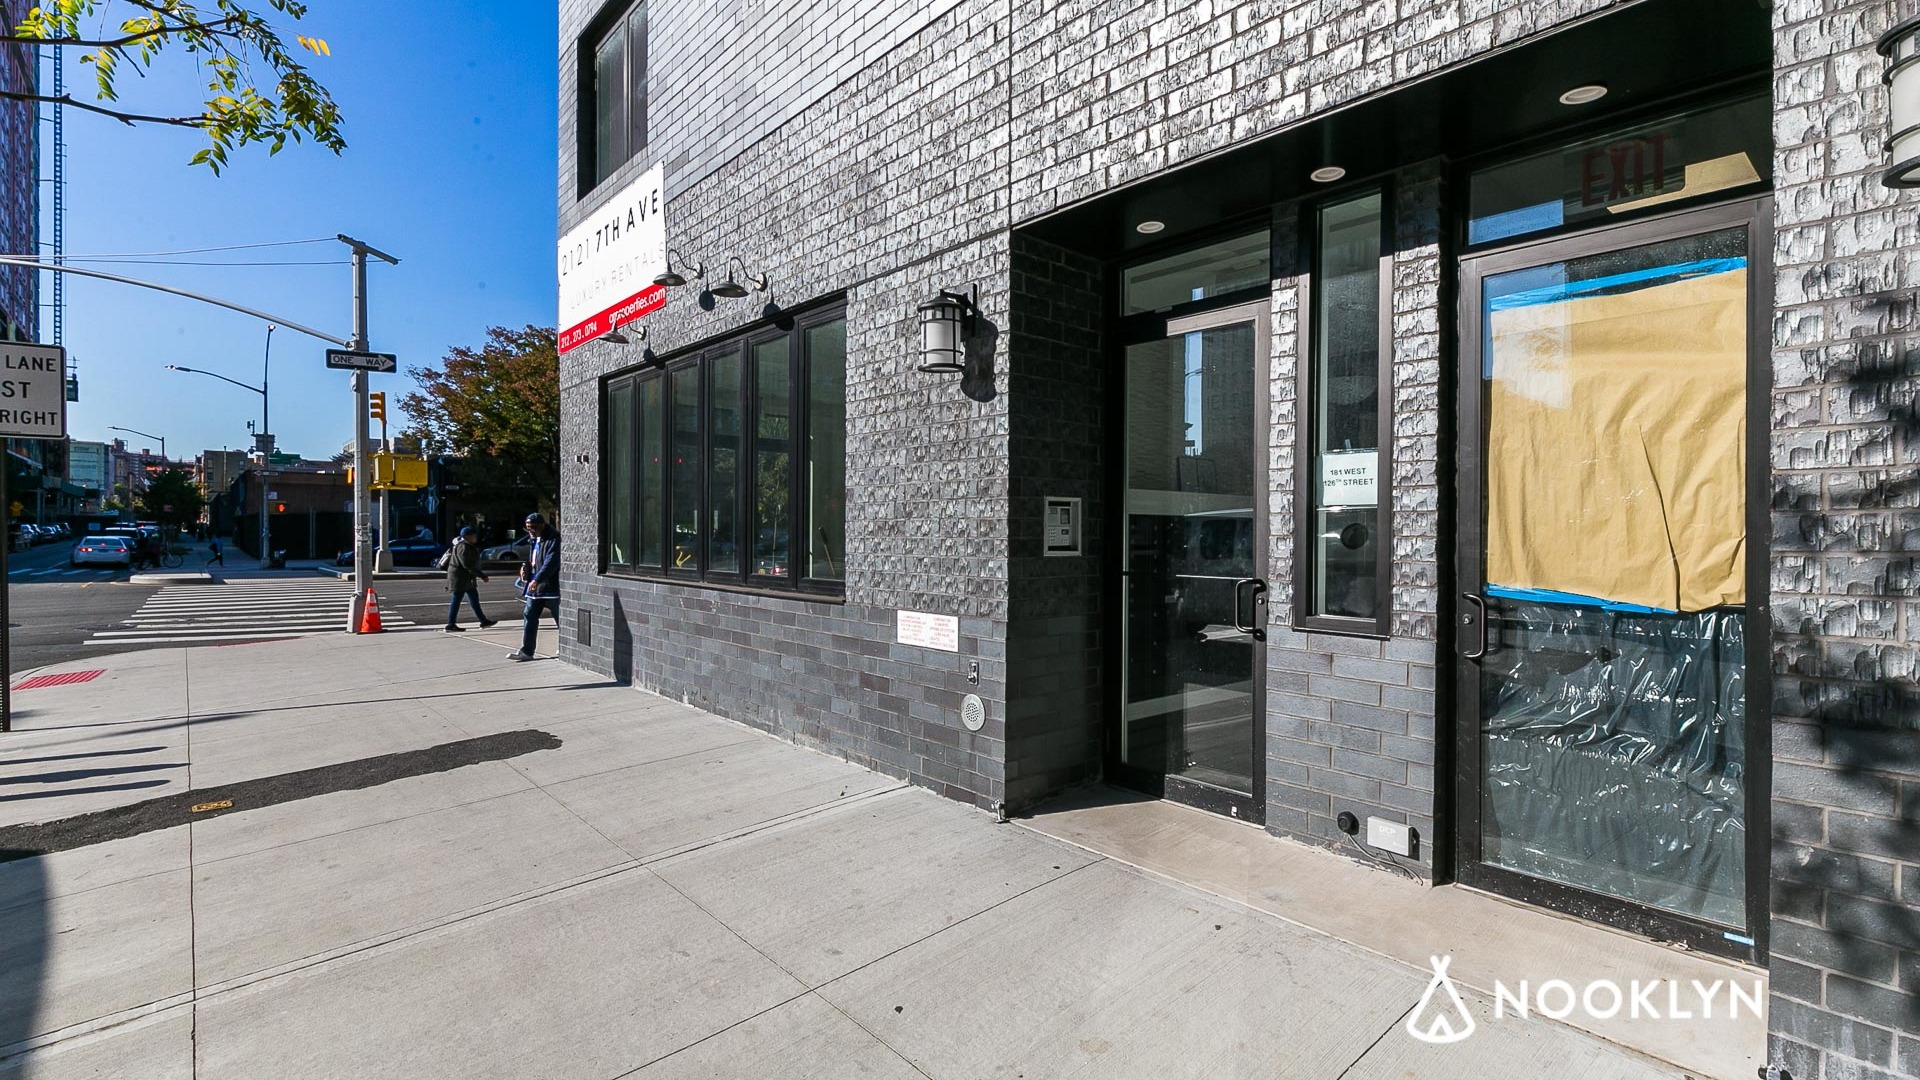 2121 adam clayton powell jr. blvd building front and laundry 2